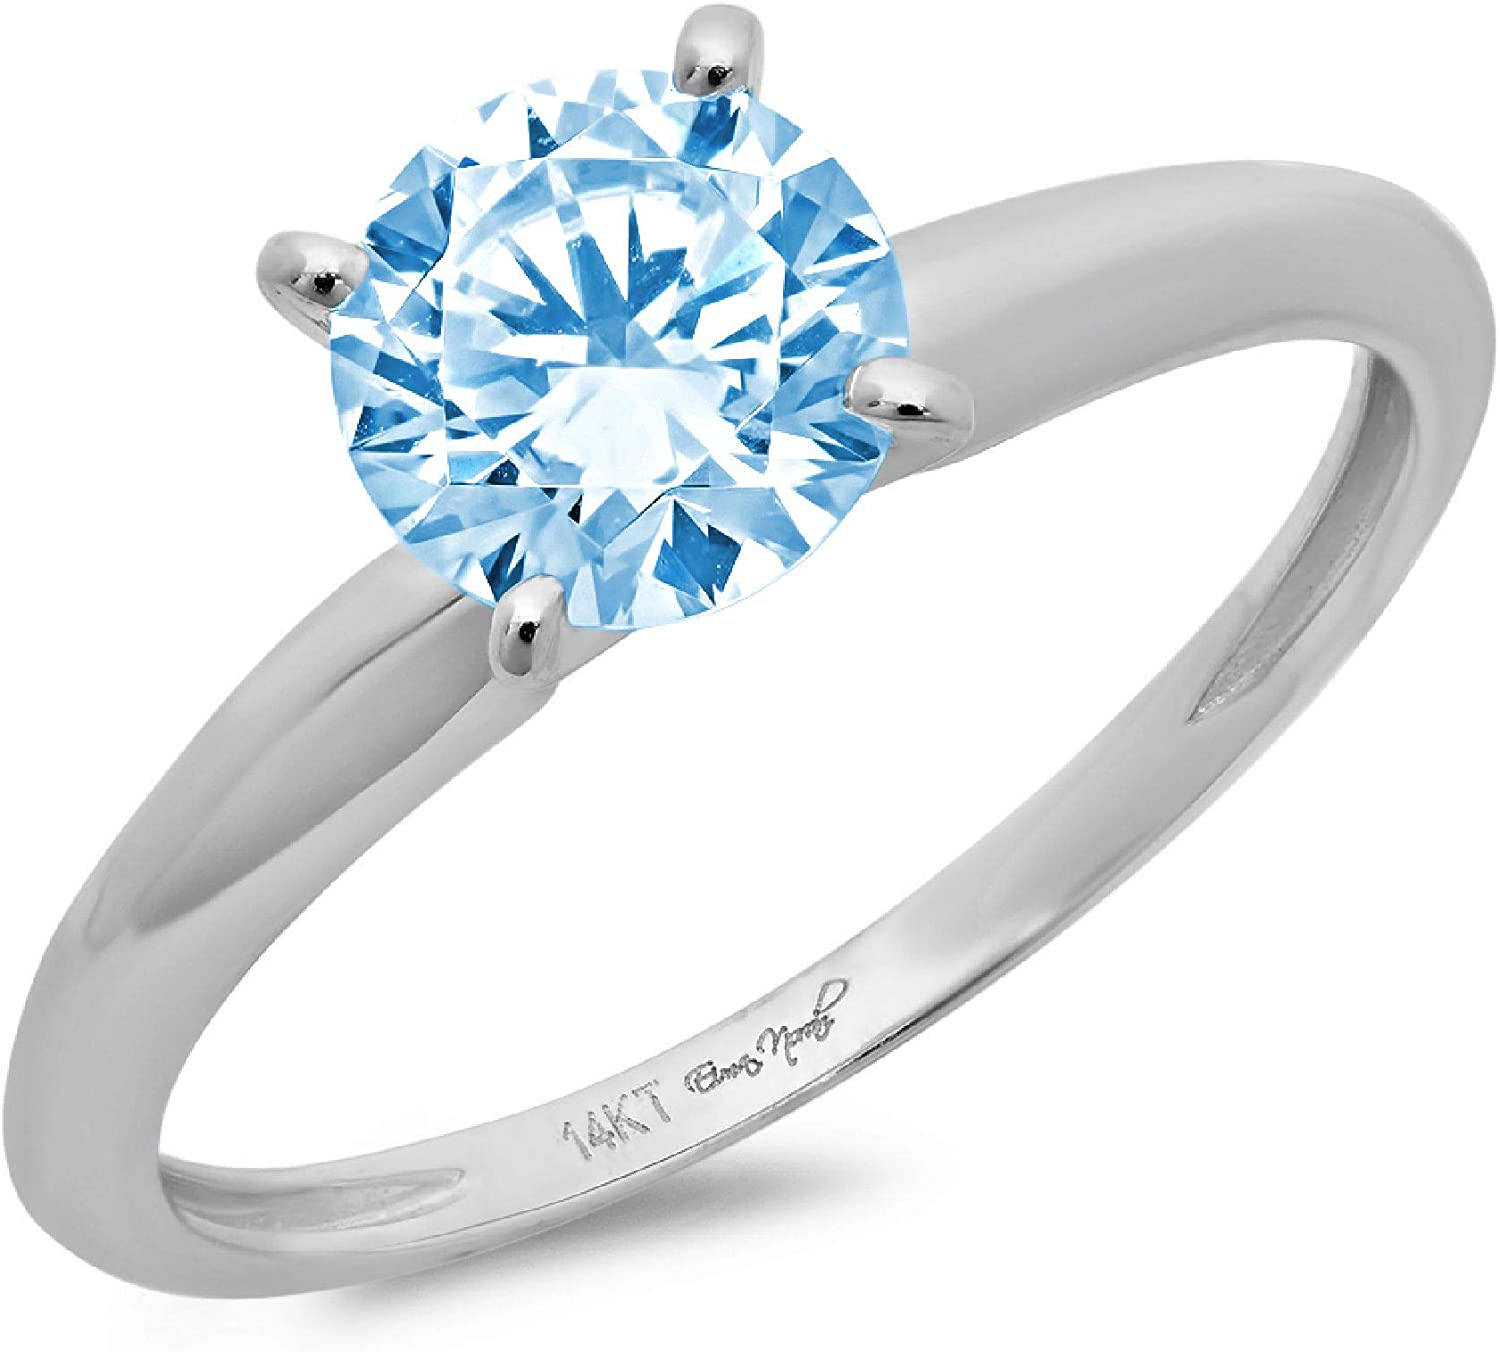 Clara Pucci 1.50 ct Brilliant Round Cut Solitaire Natural Sky Blue Topaz Gem 4-Prong Engagement Wedding Bridal Promise Anniversary Ring in Solid 18K White Gold for Women